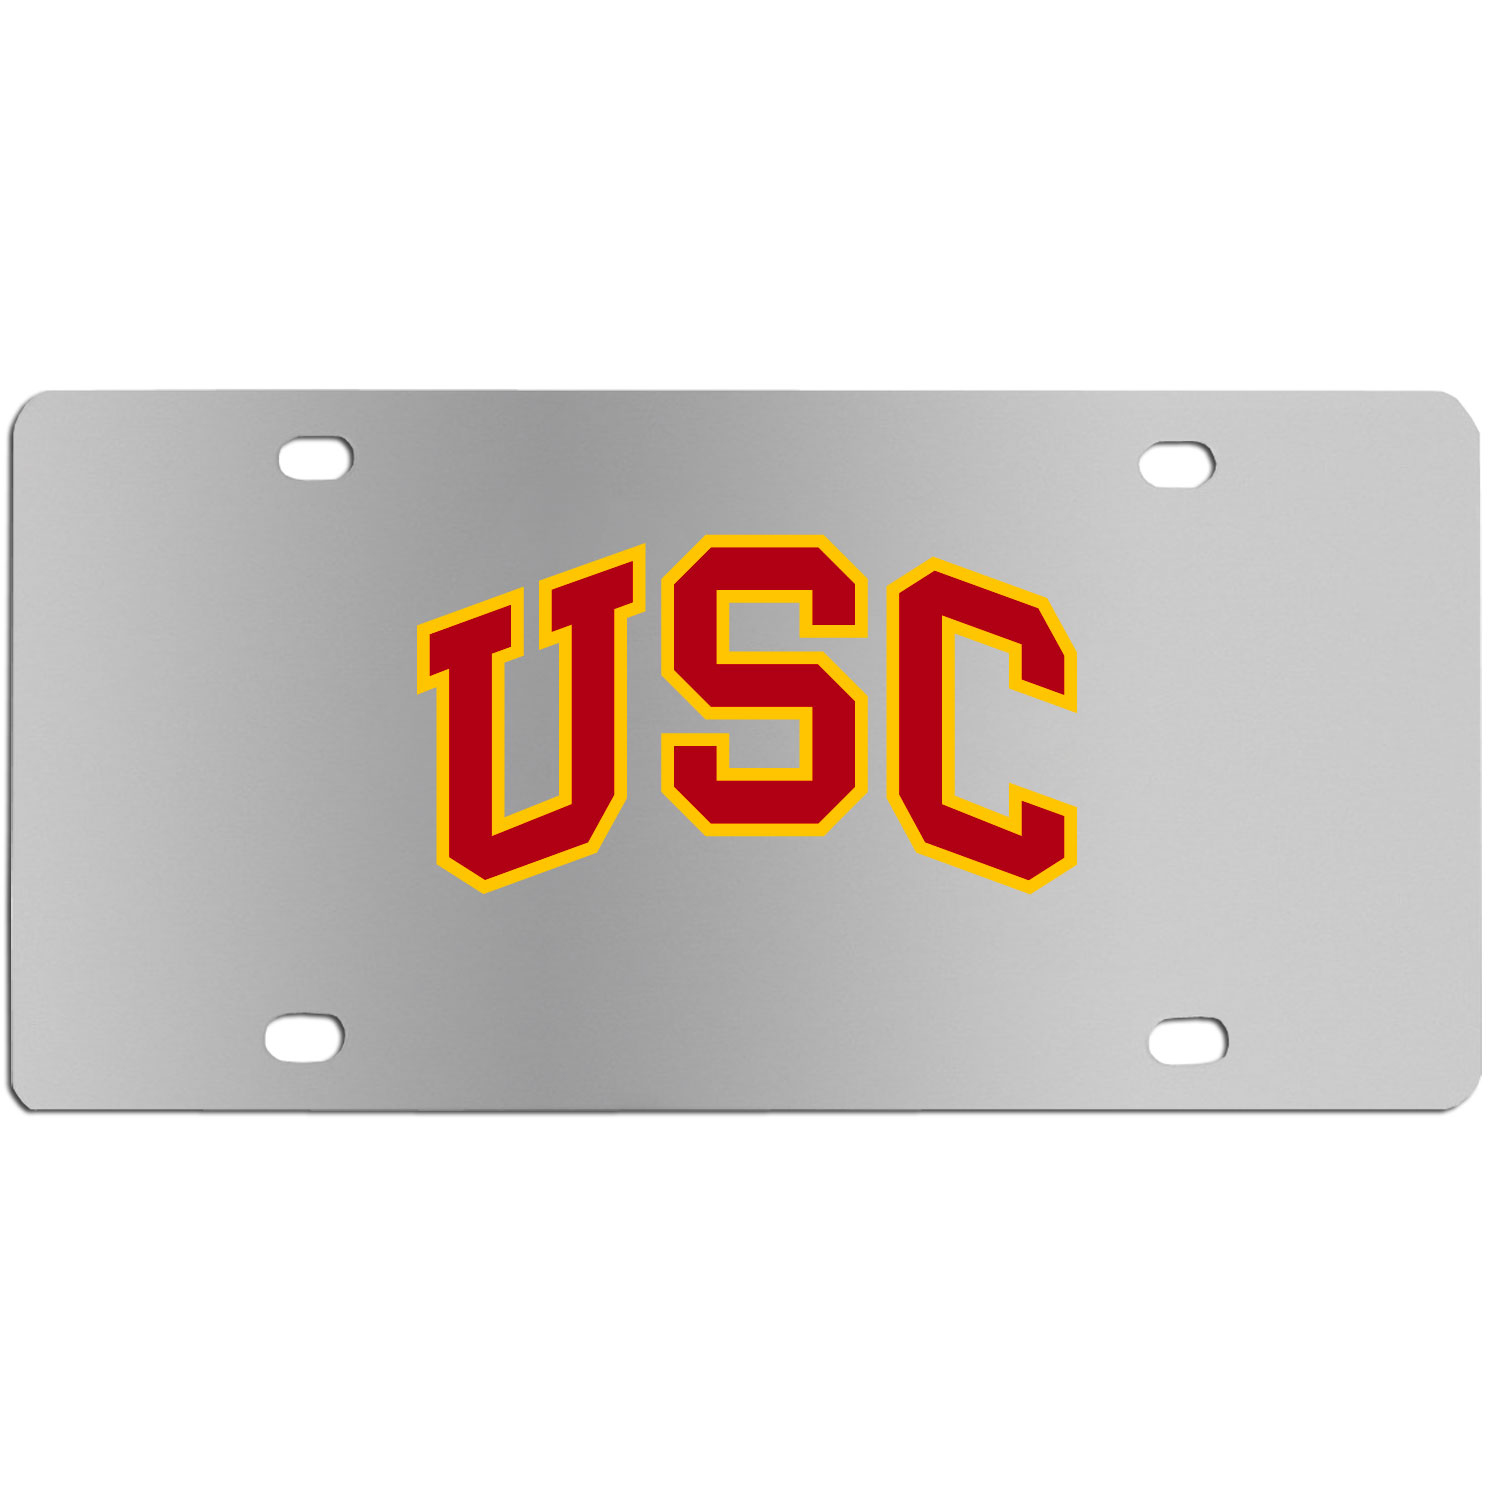 USC Trojans Steel License Plate Wall Plaque - This high-quality stainless steel license plate features a detailed team logo on a the polished surface. The attractive plate is perfect for wall mounting in your home or office to become the perfect die-hard USC Trojans fan decor.